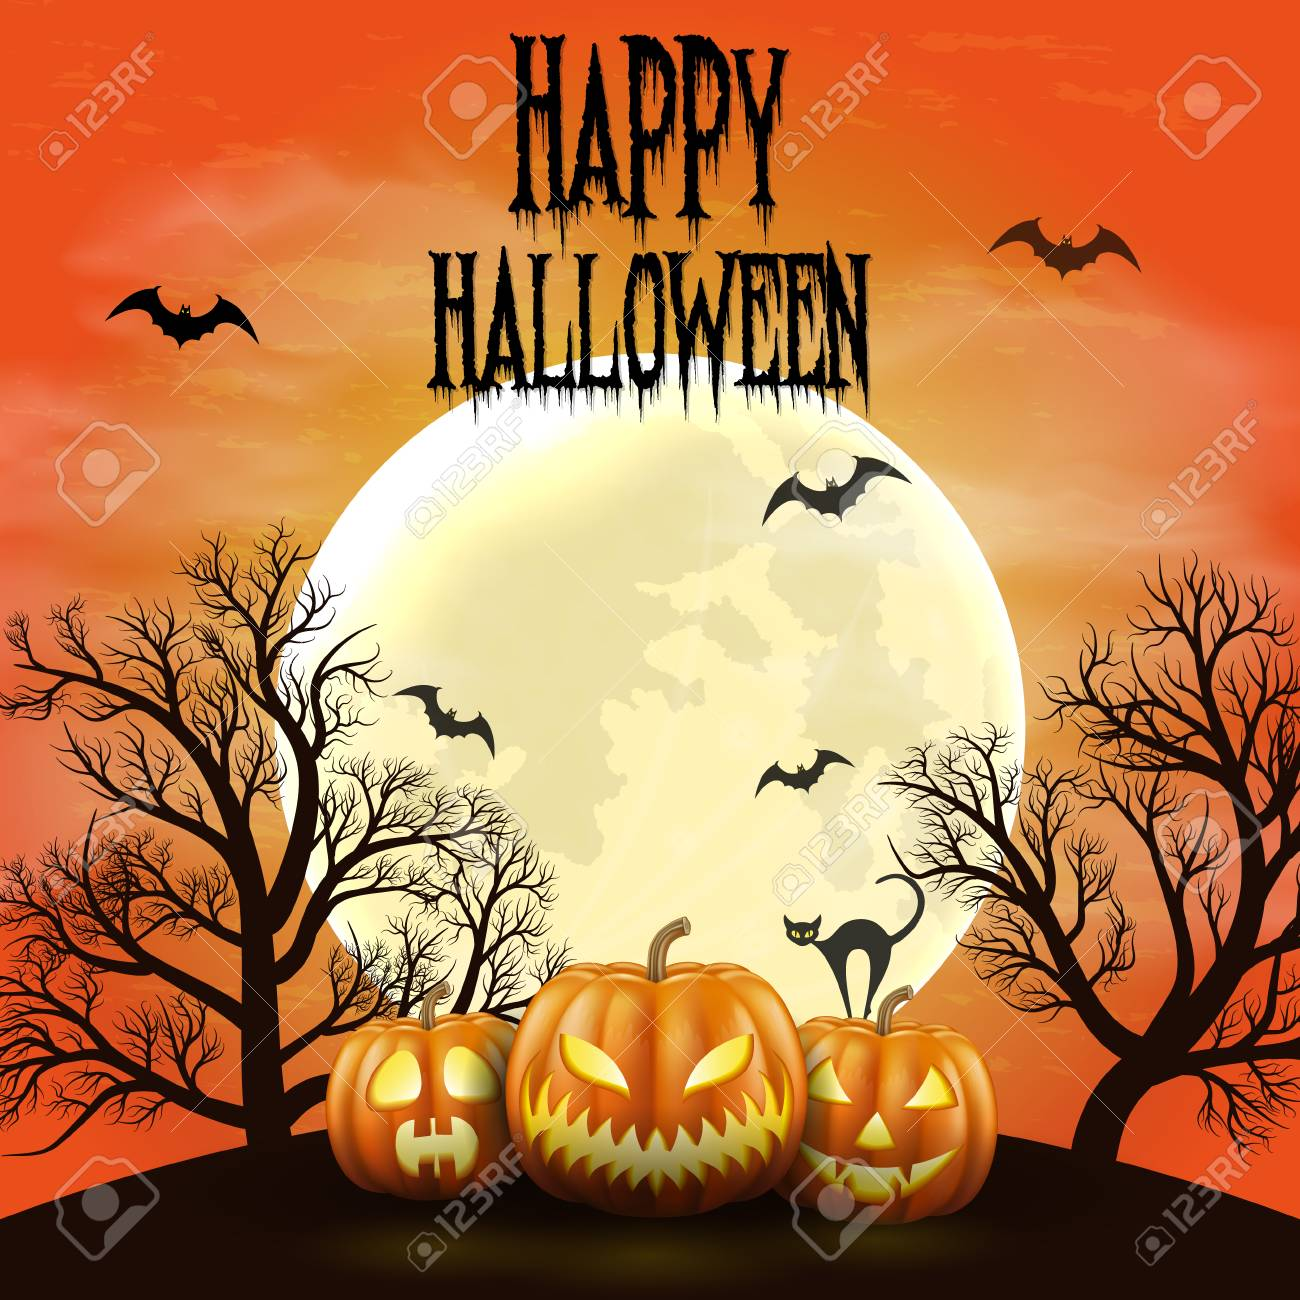 Happy Halloween night background with realistic scary pumpkins and moon. - 109879646